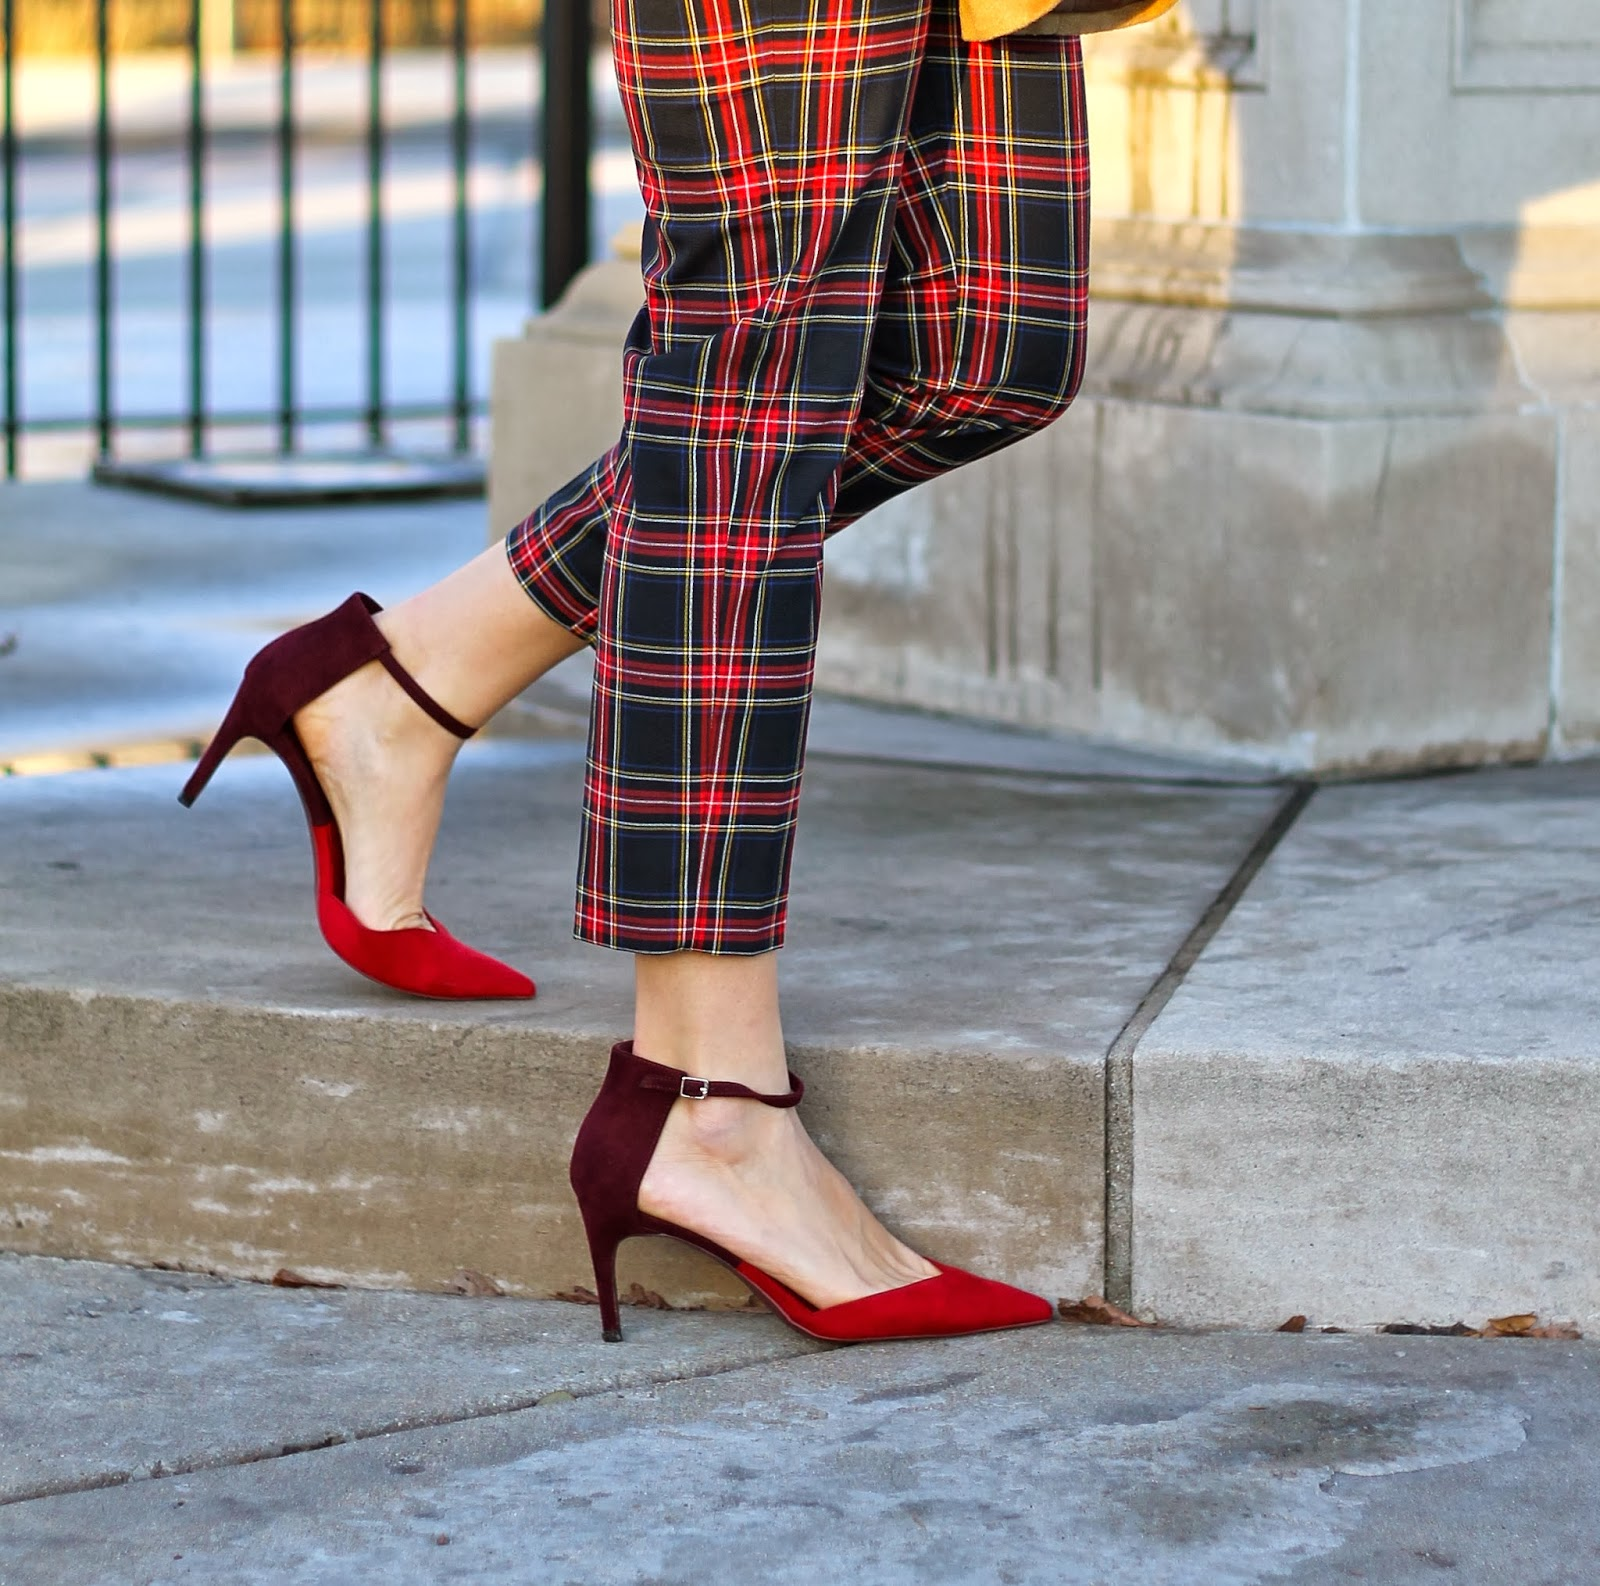 zara, red, two, town, heels